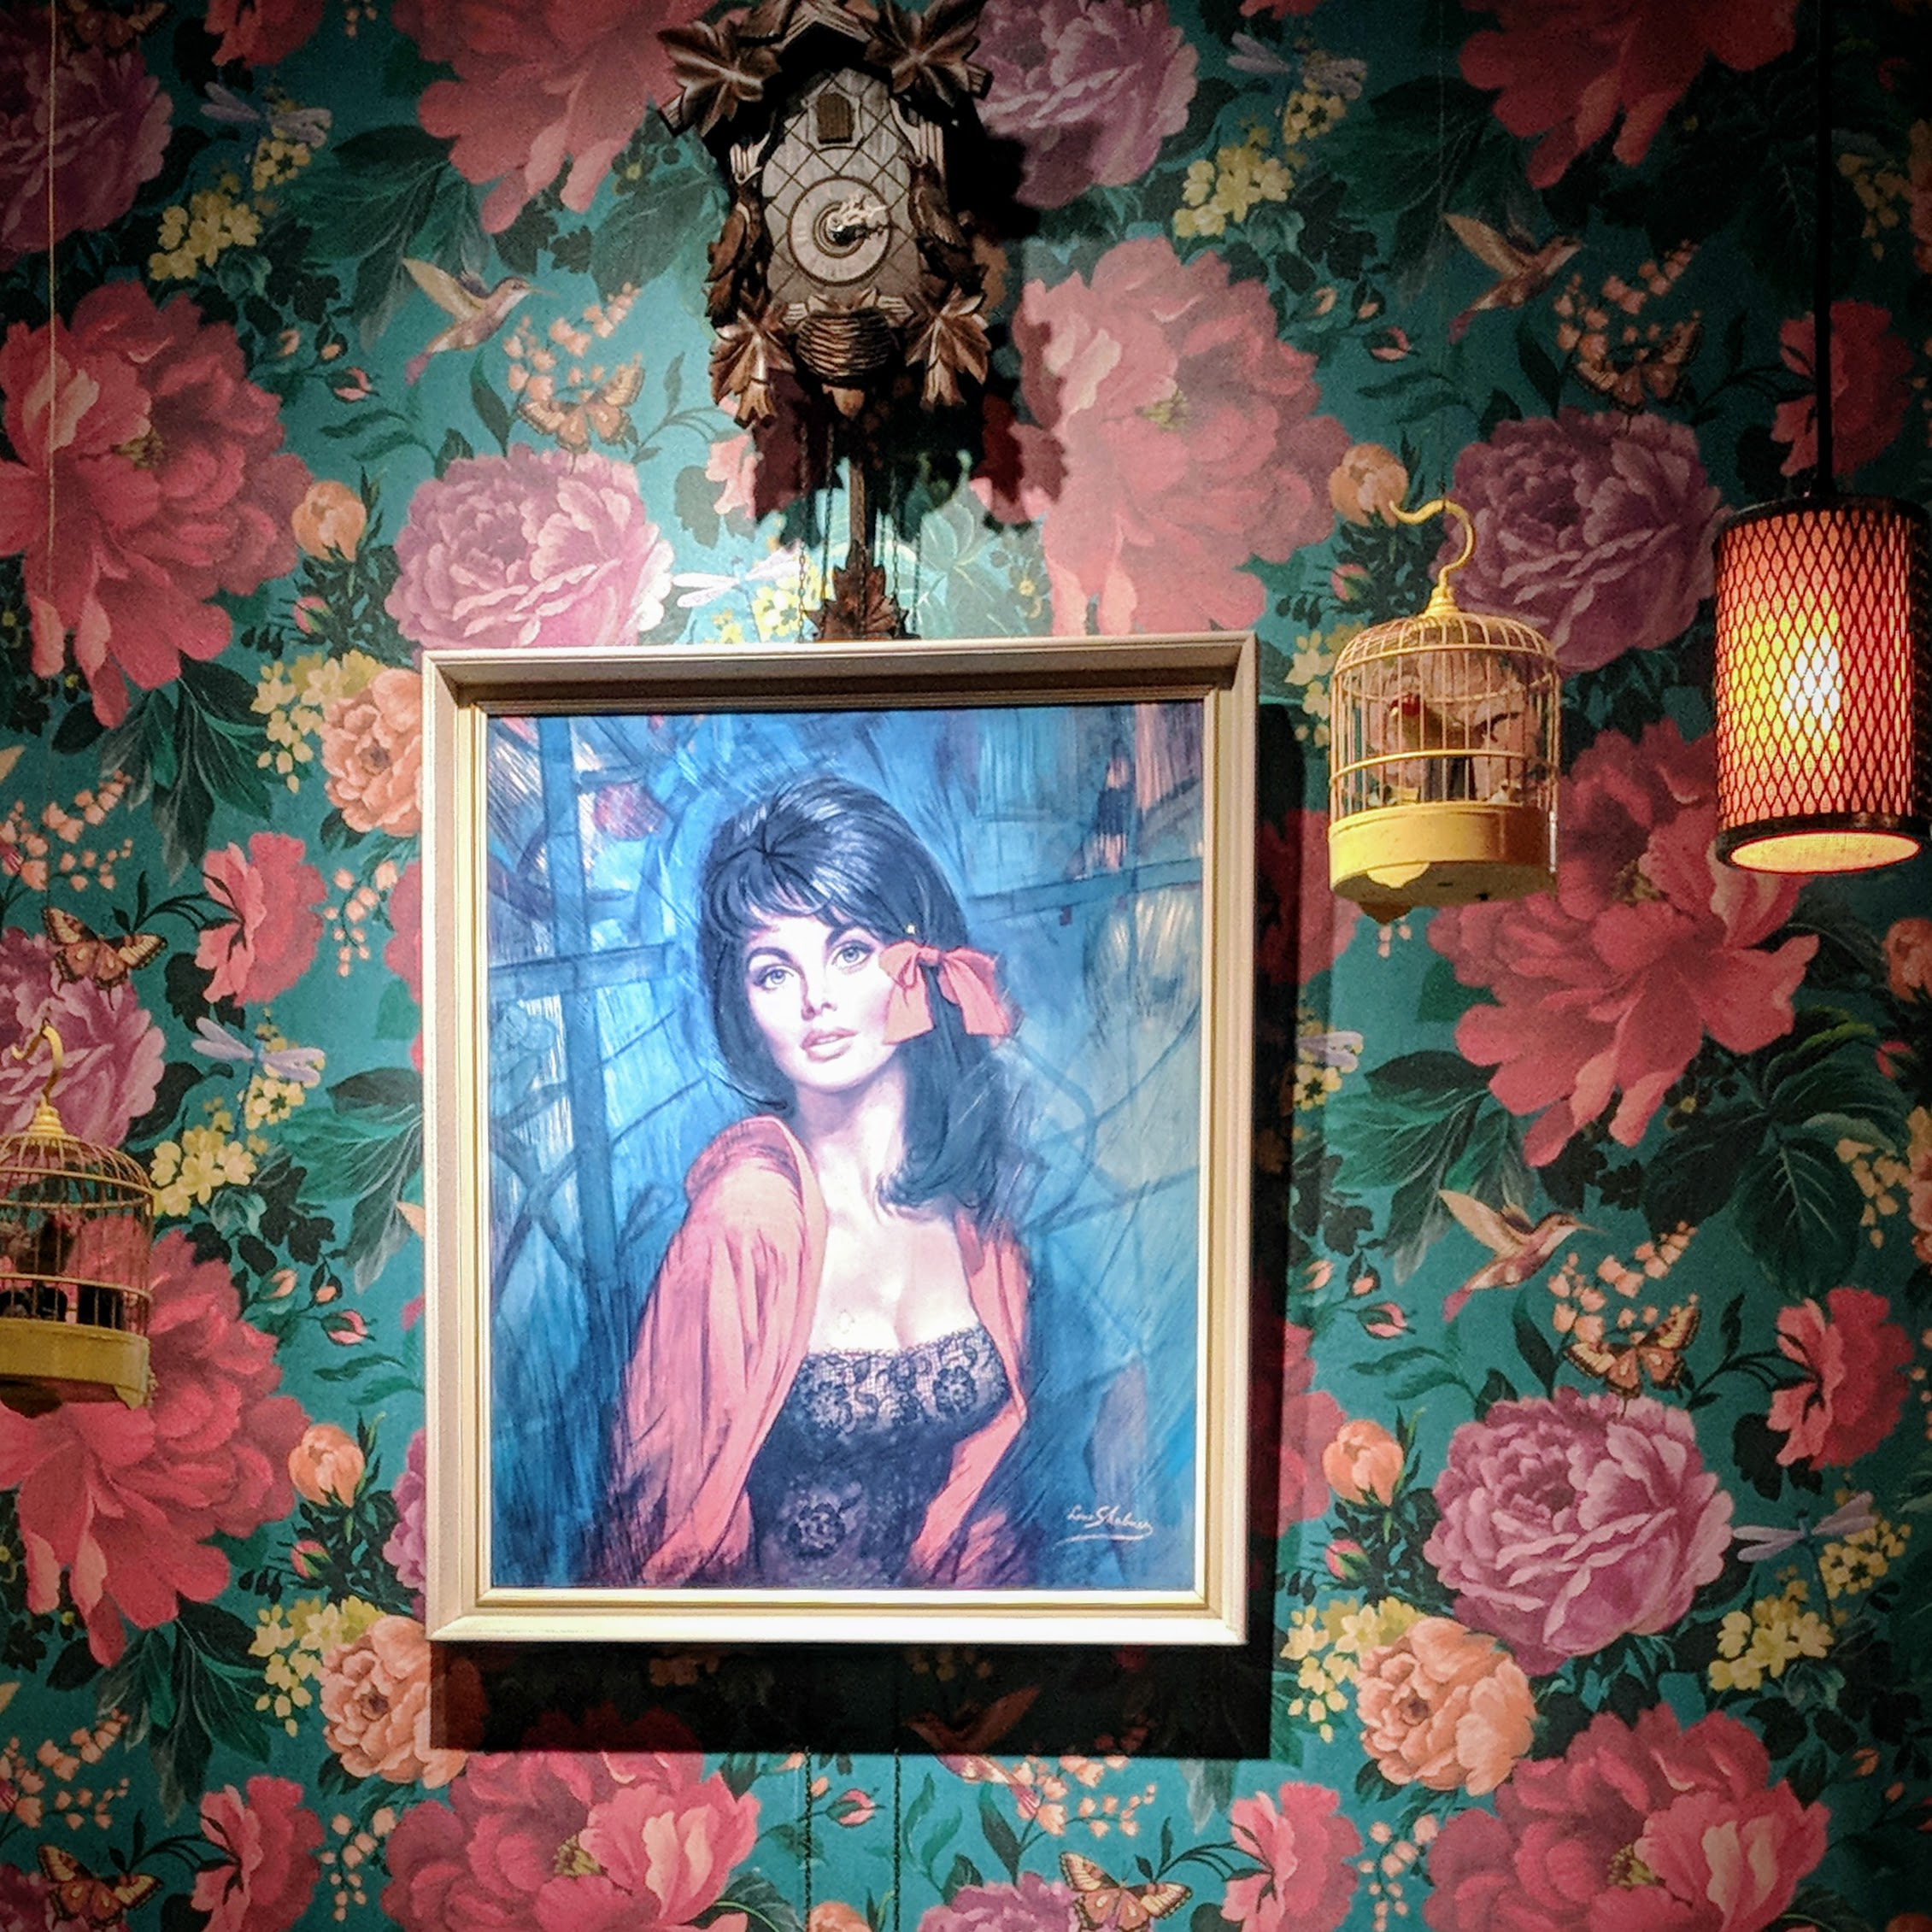 Painting in a bar